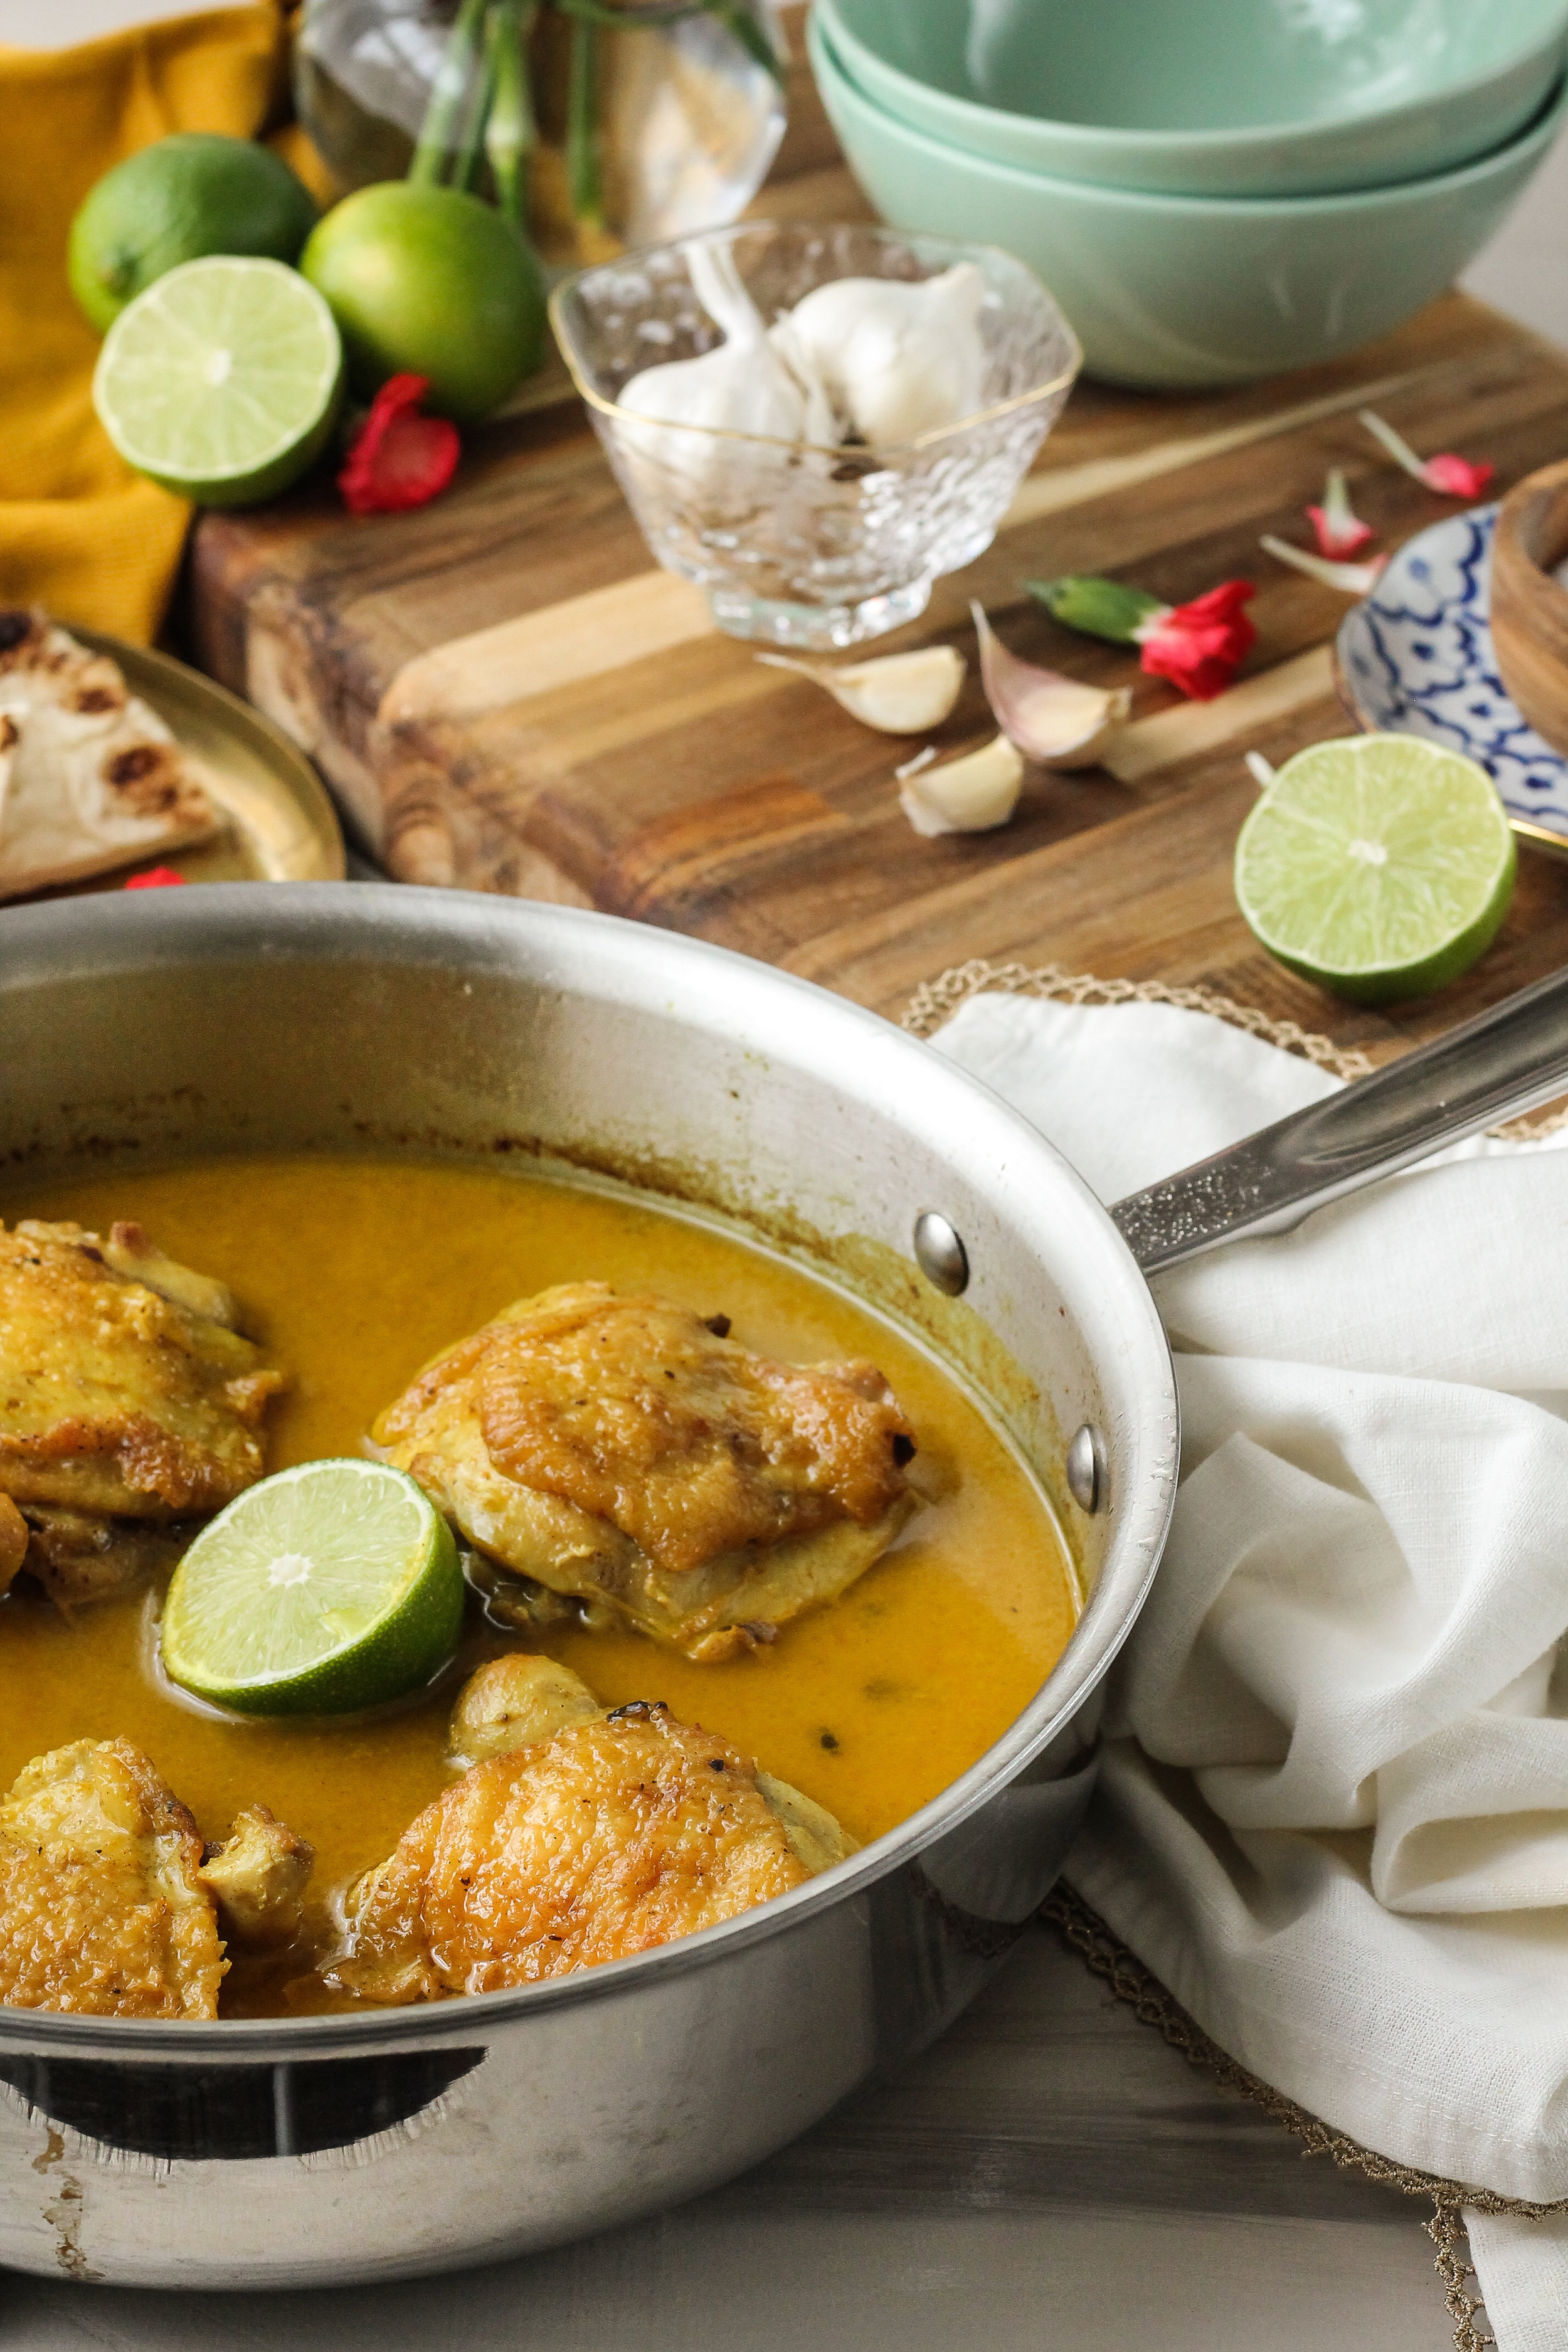 This Weeknight Buttery Coconut Curry Chicken is fast, simple, and the complete comfort meal!  Find this recipe and many more on WWW.PEDANTICFOODIE.COM!